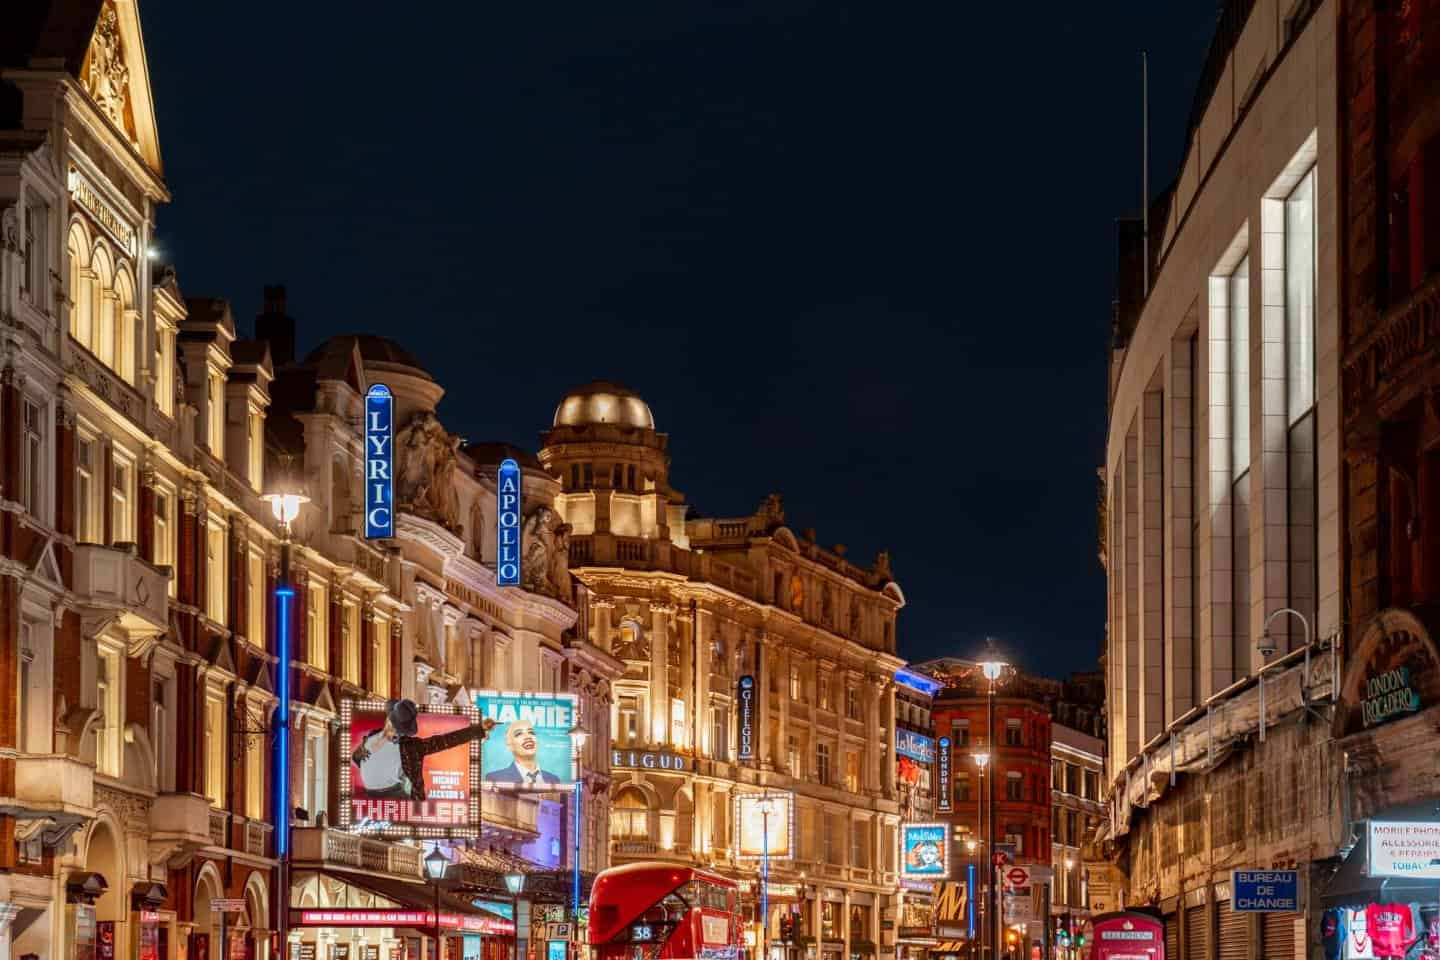 The bright lights of Shaftesbury Avenue in Soho, London.